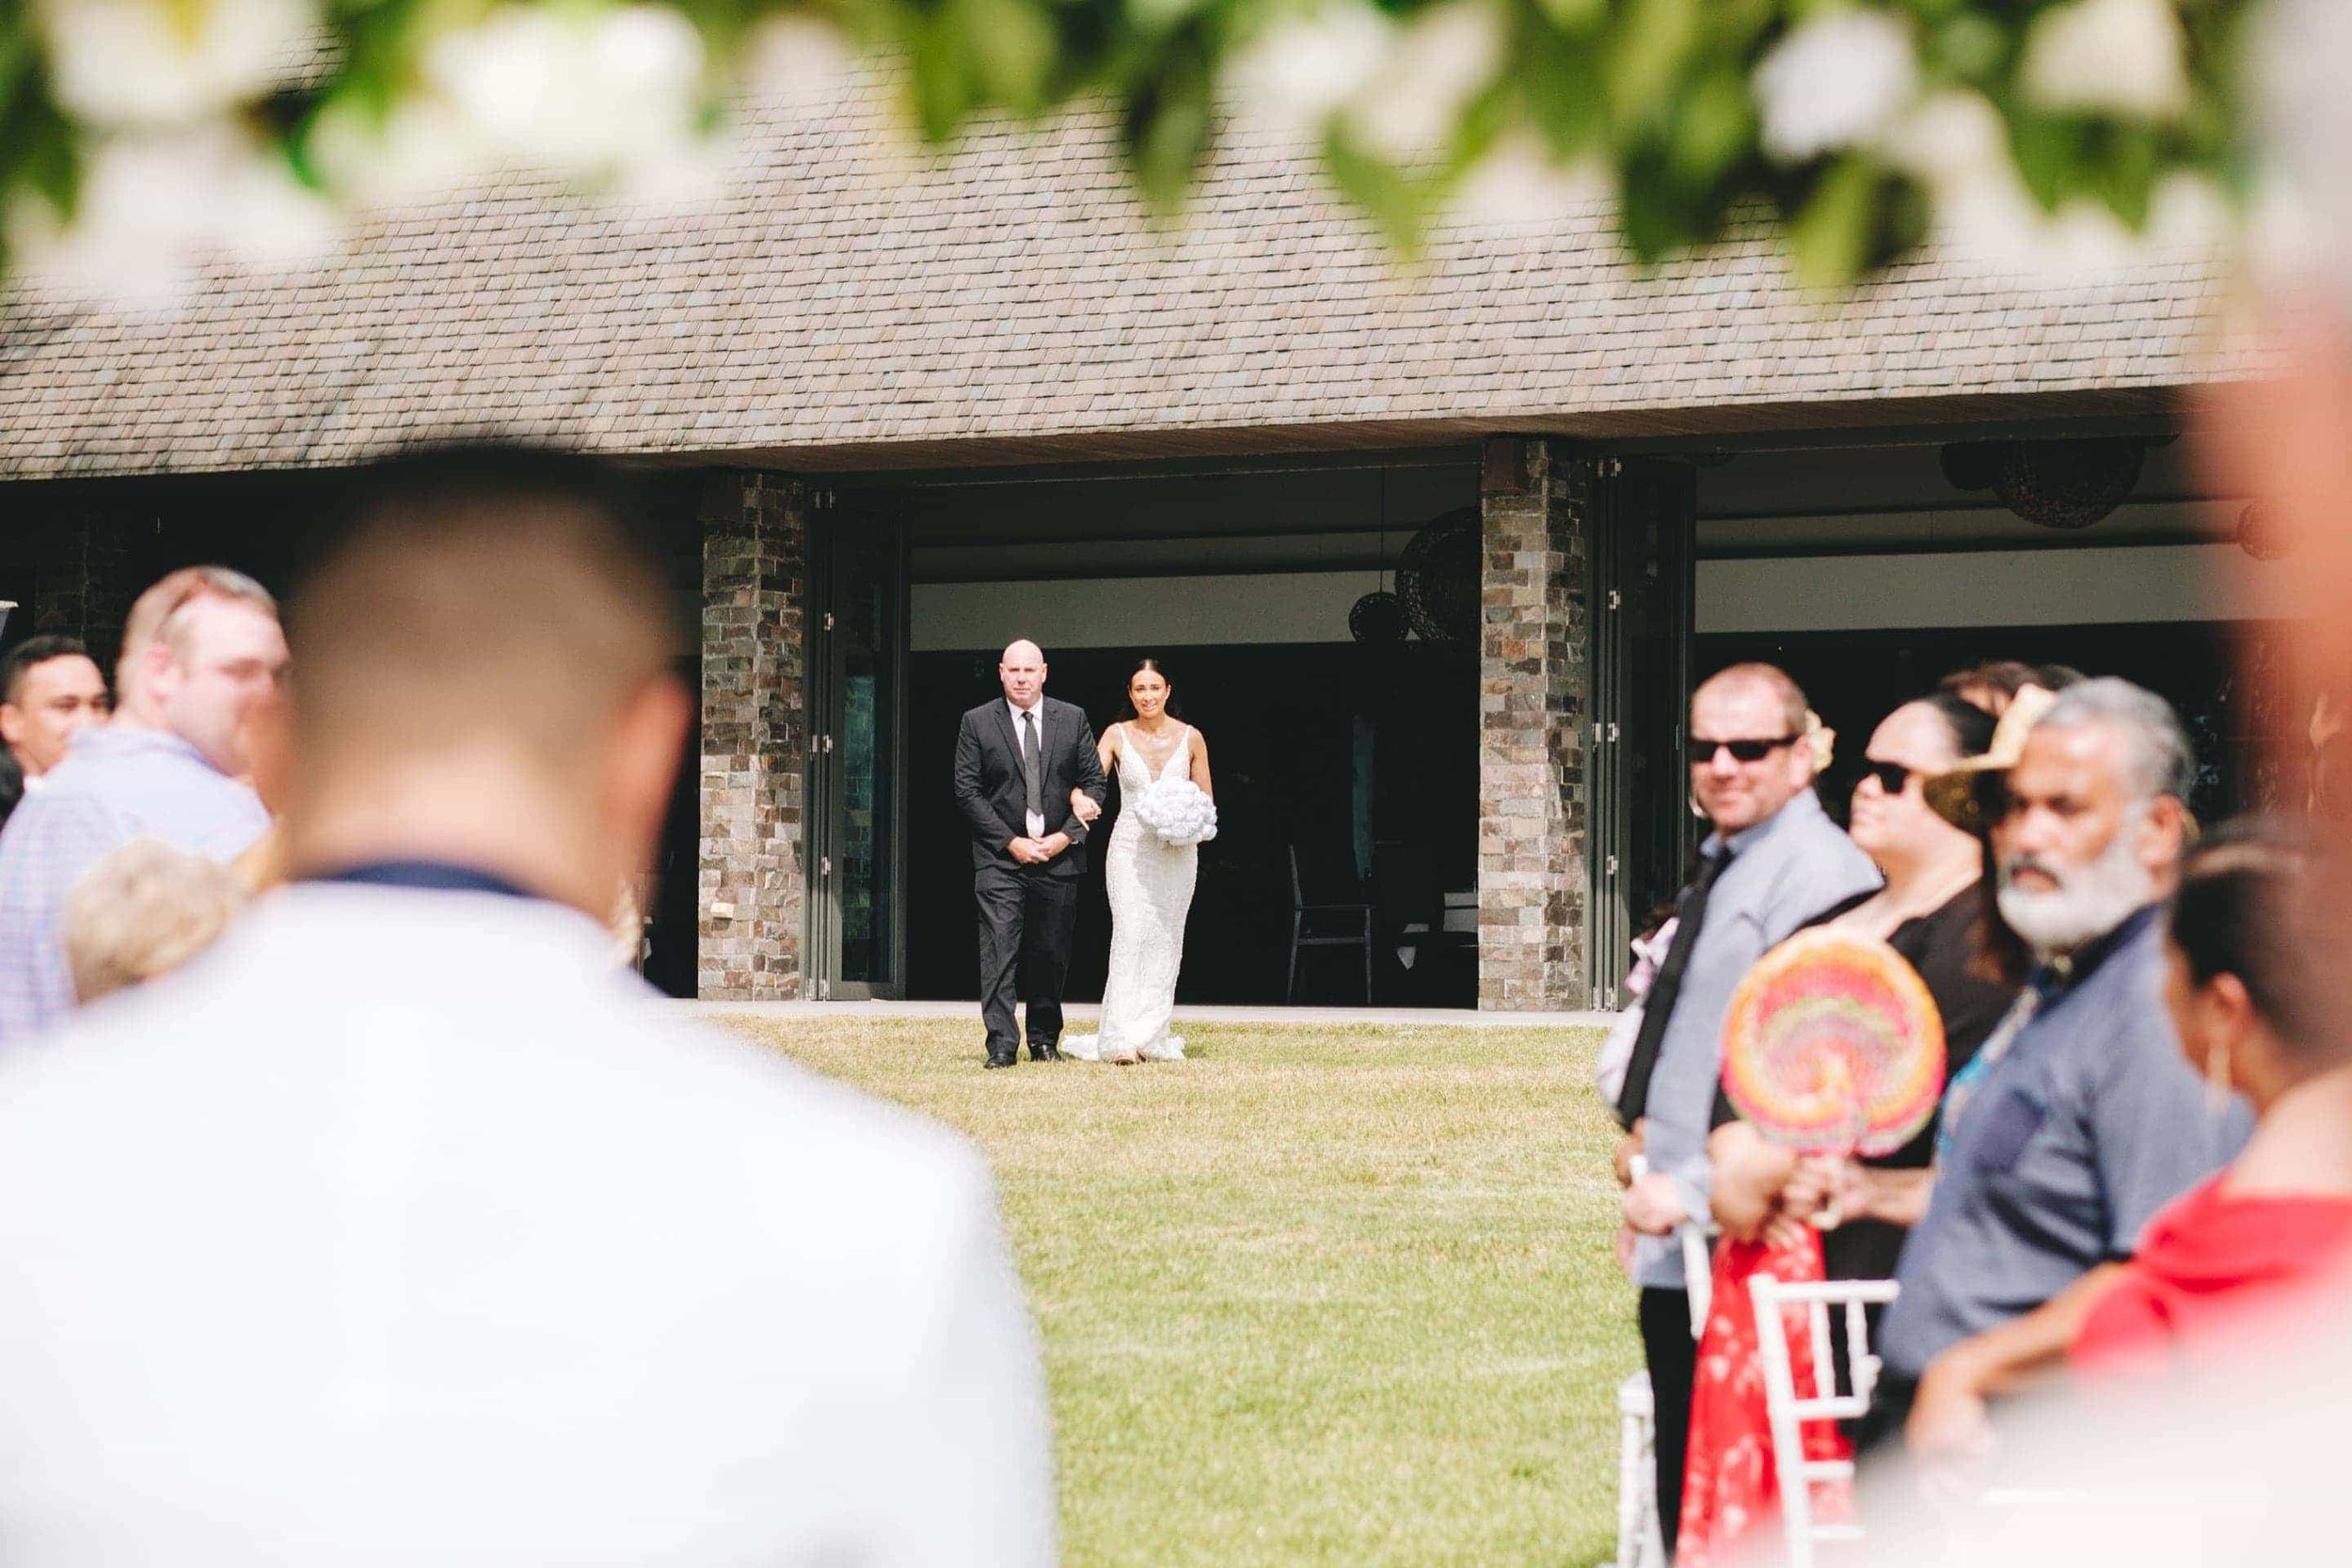 the bride and her father walking down the lawn aisle in front of the Navo Restaurant.